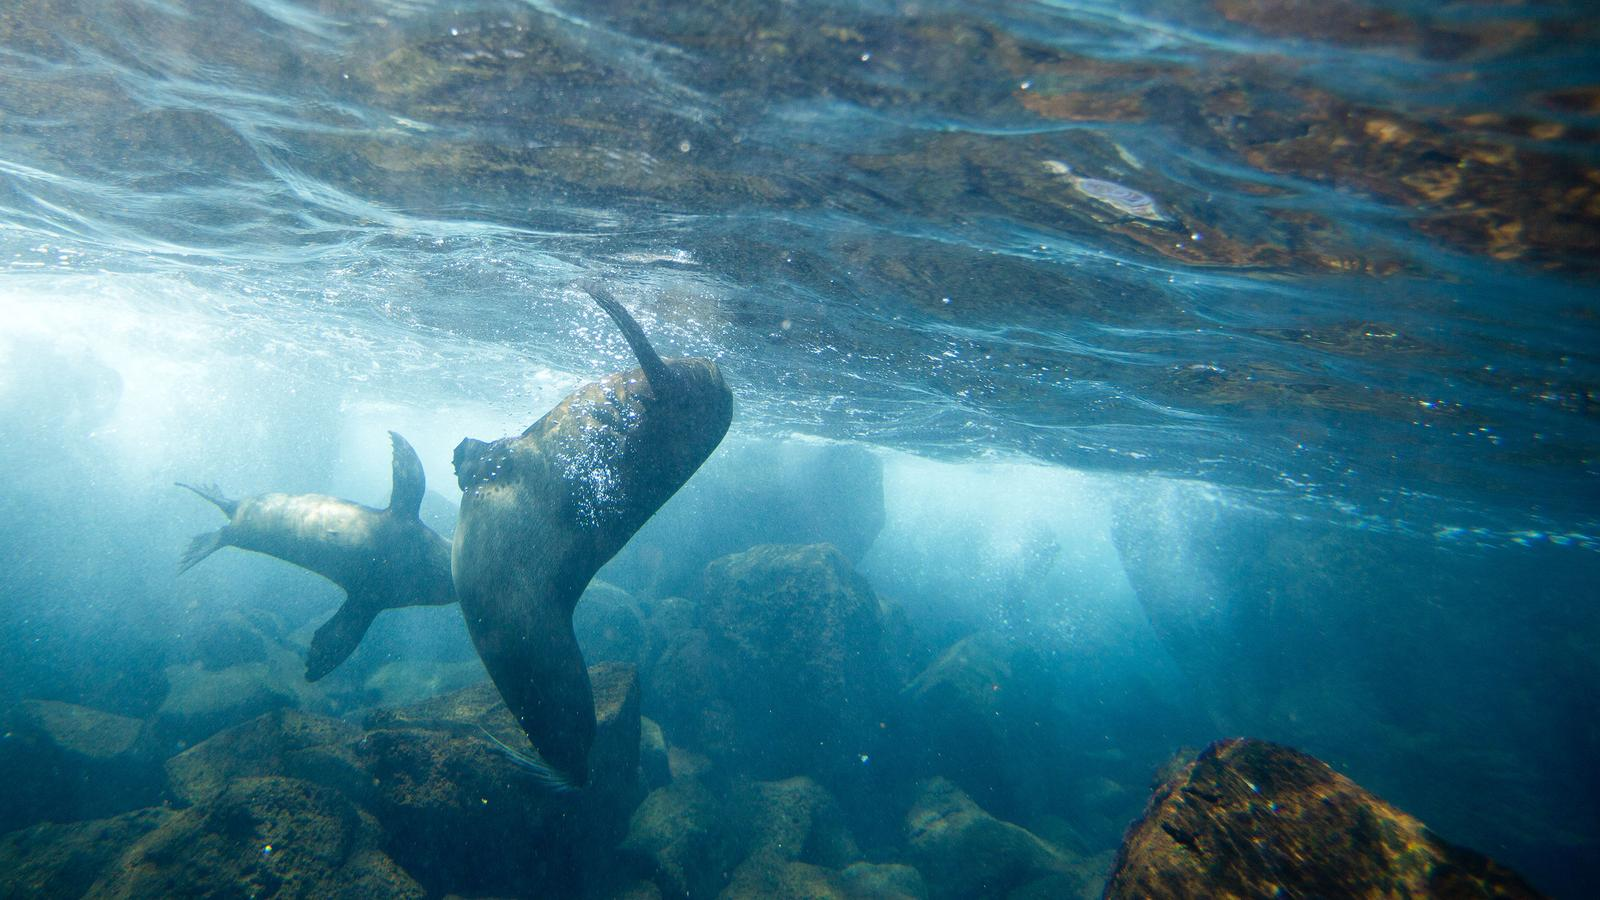 Sea lions playing underwater in the Galapagos Islands